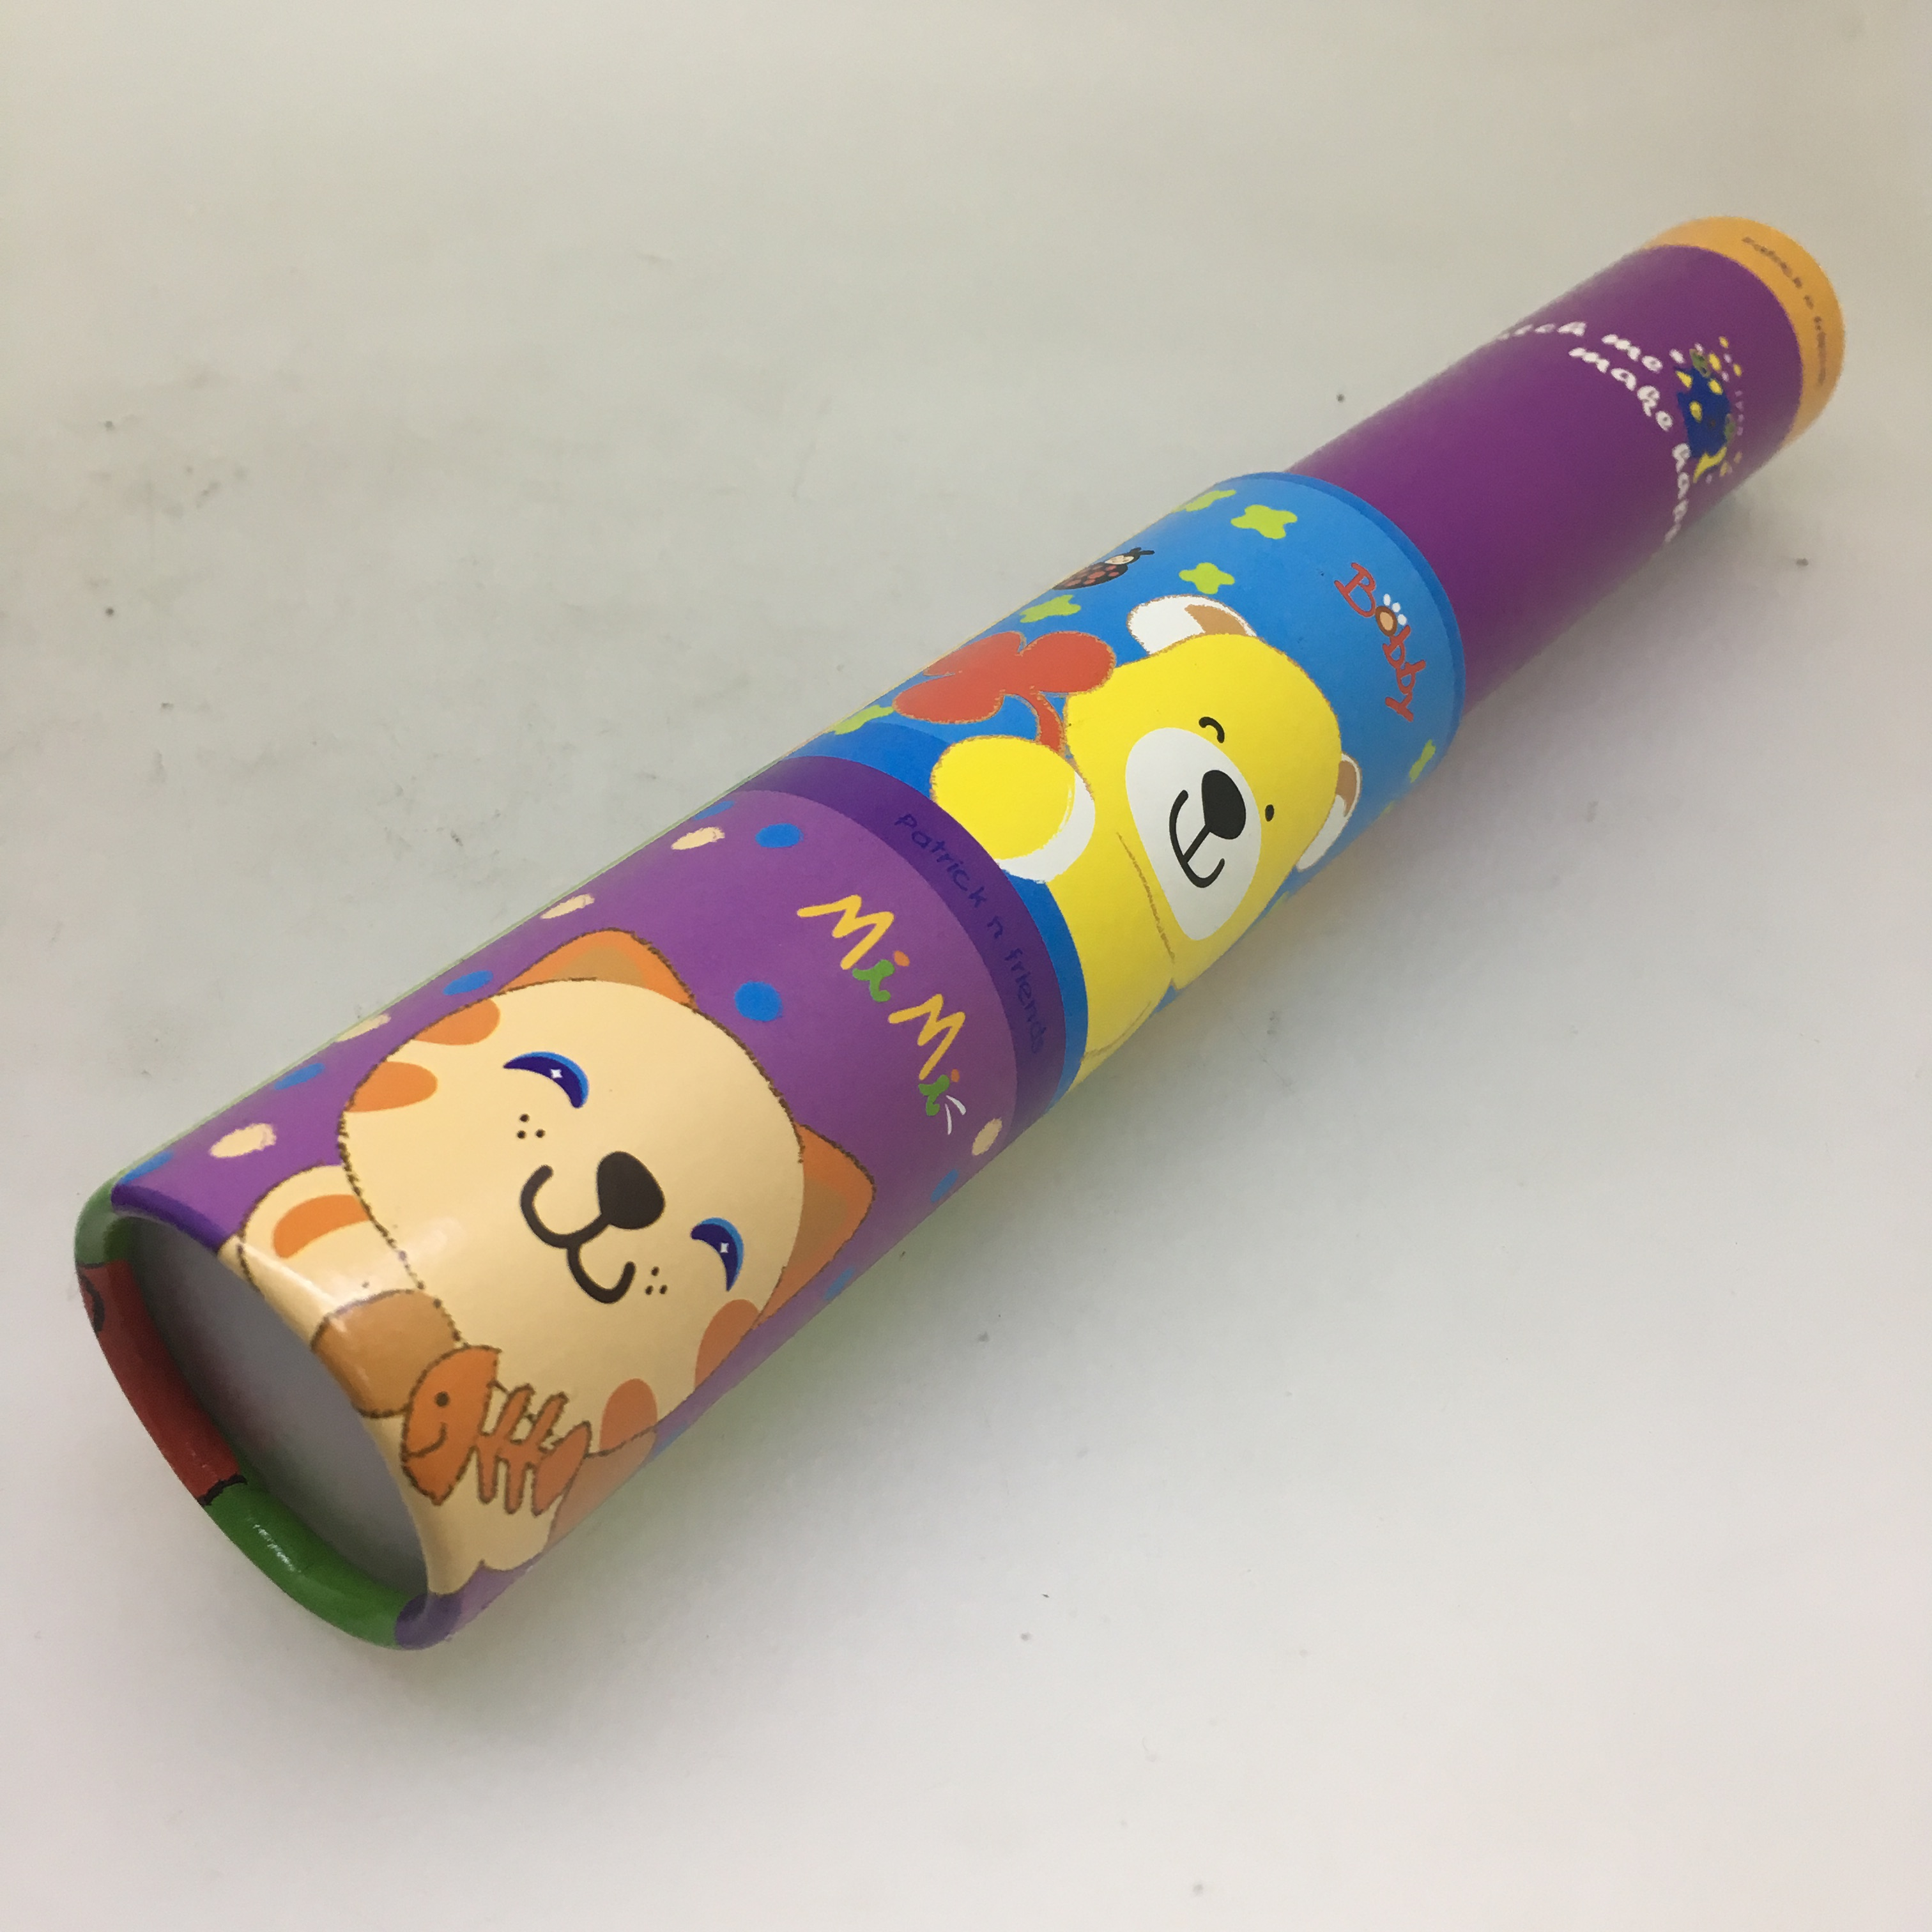 Promotional Product Wholesale Custom Kaleidoscope Toy Child Safety Product